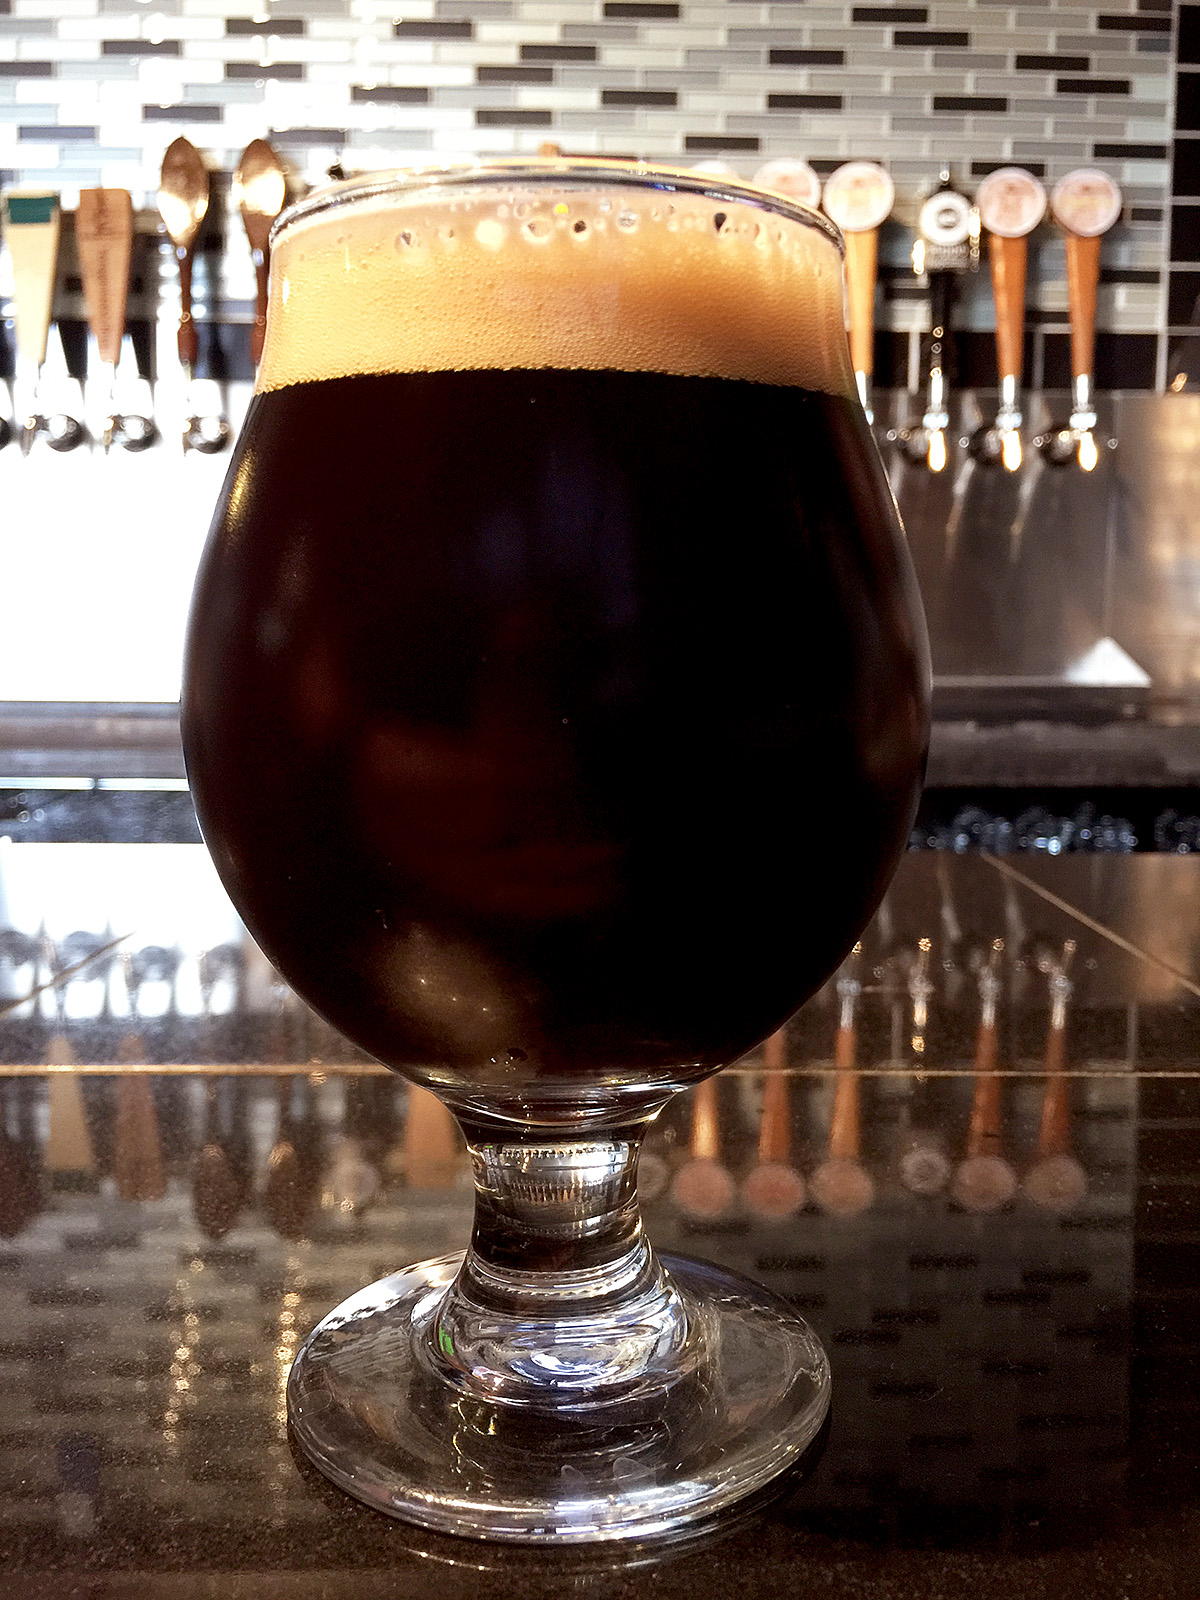 Spanish Mocha, by BCT Brewing Project